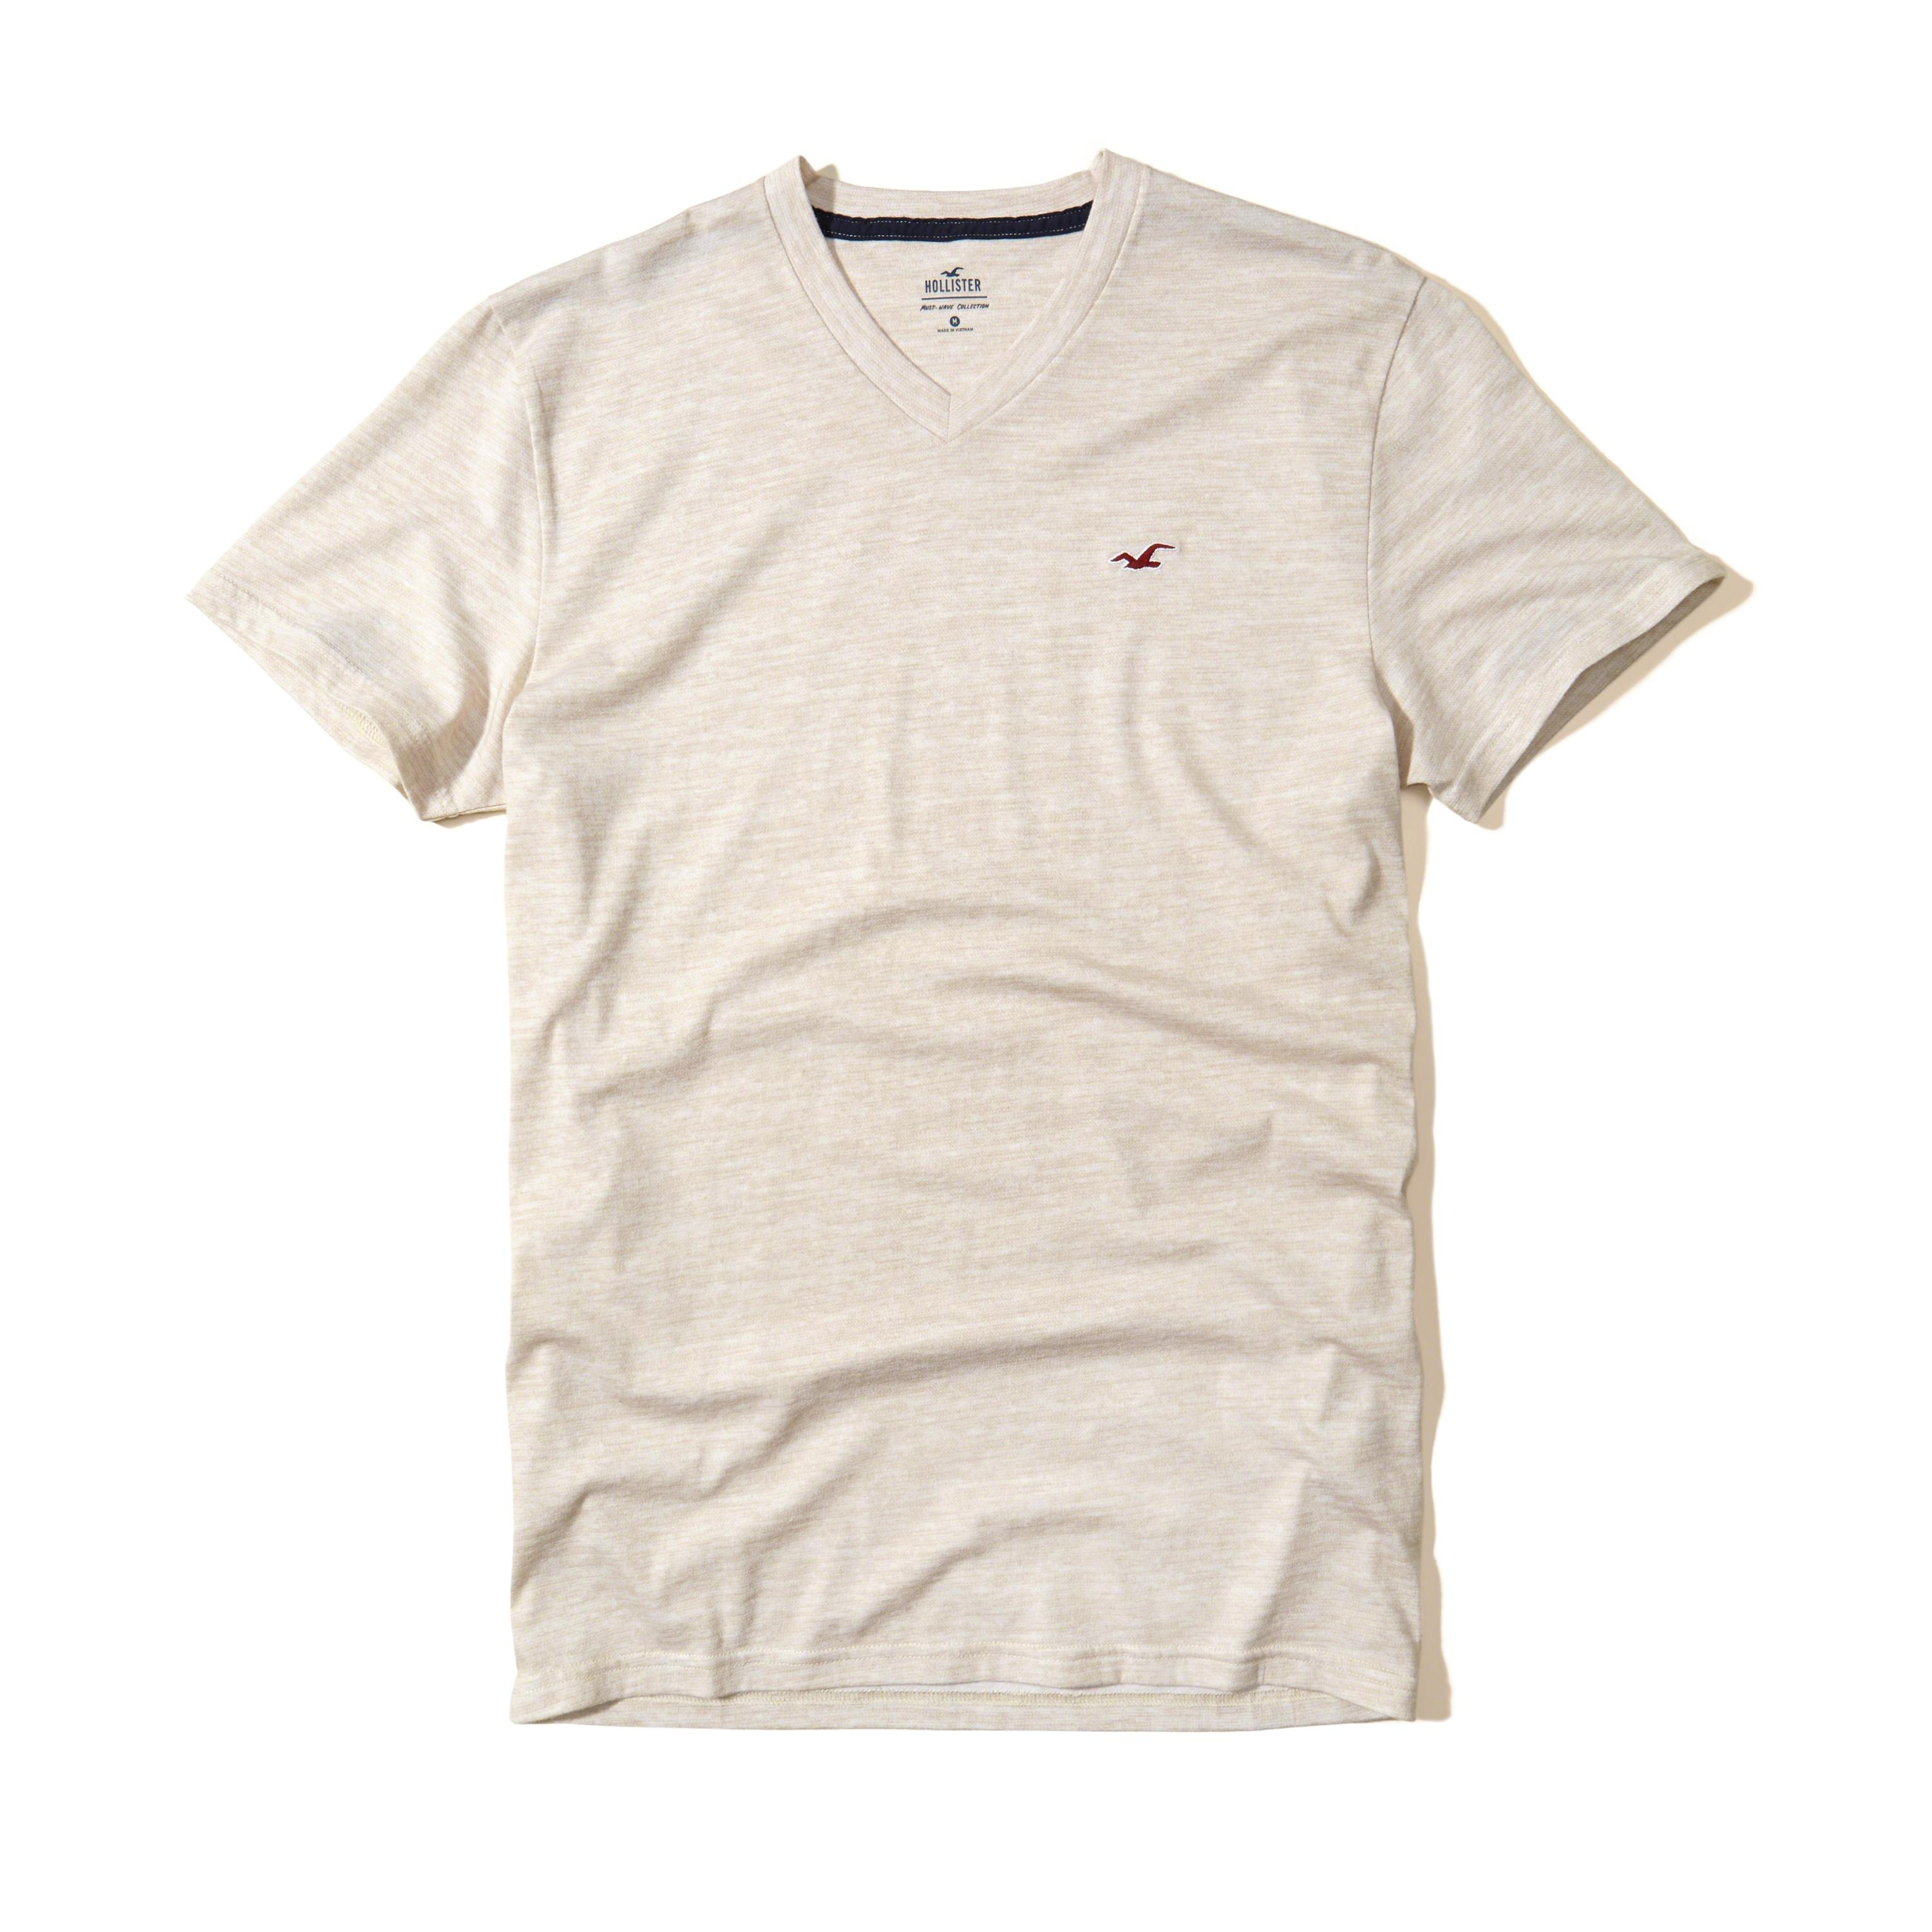 Lyst hollister must have textured v neck t shirt in for Must have dress shirts